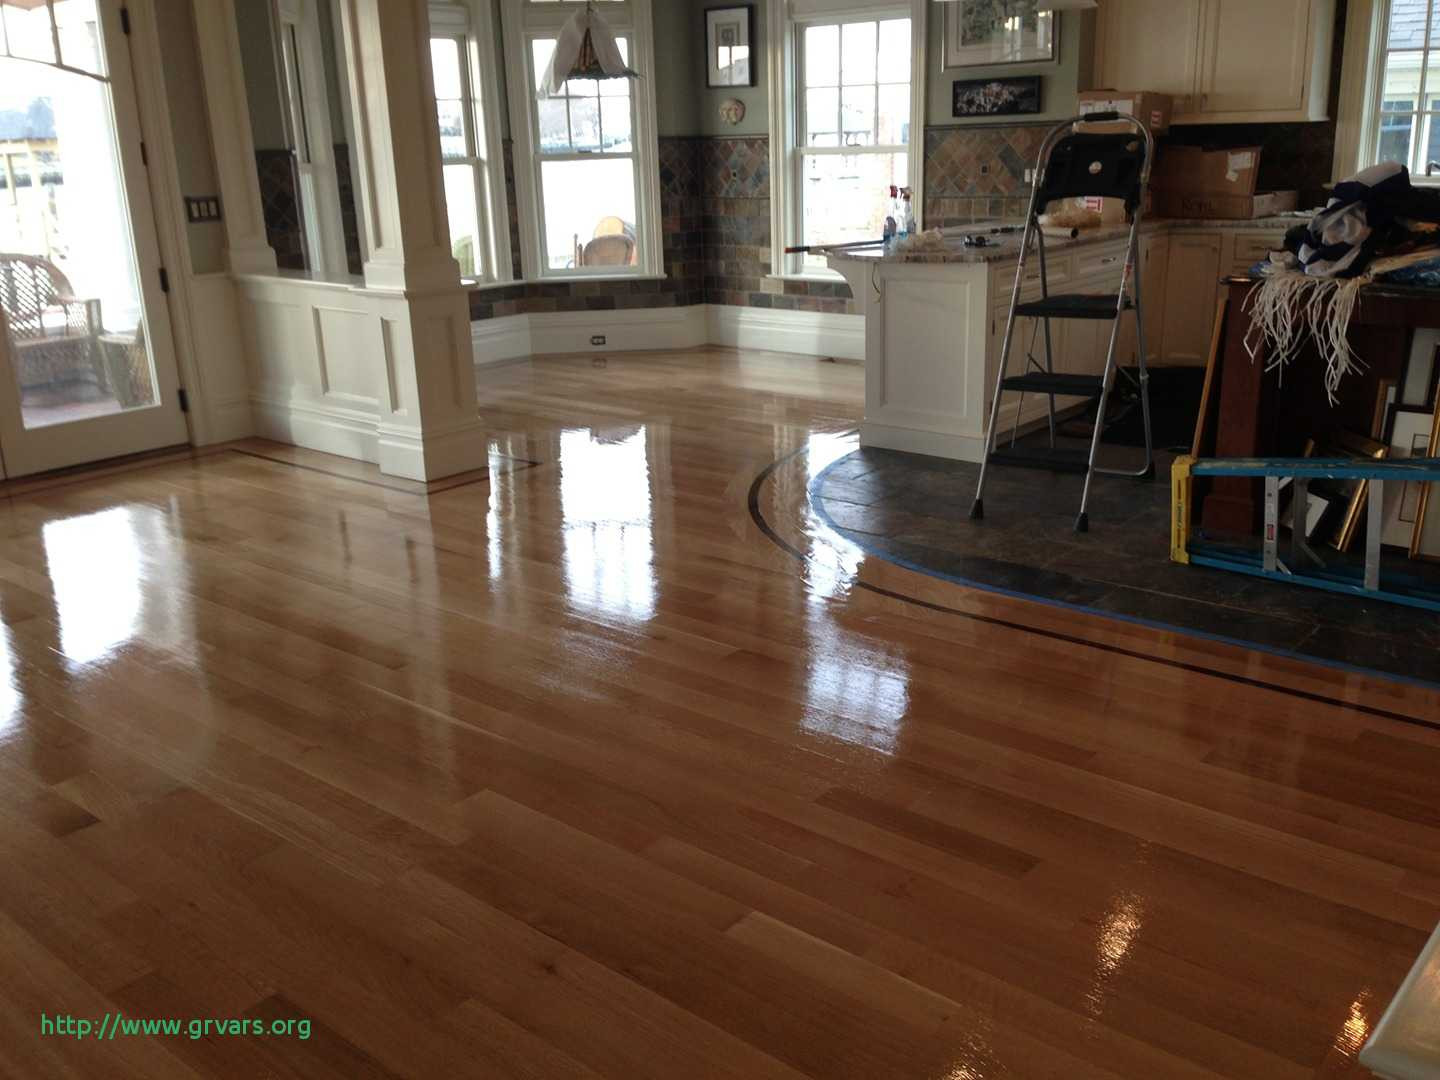 Hardwood Flooring York Pa Of 17 Frais Hardwood Flooring Monmouth County Nj Ideas Blog Intended for Hardwood Flooring Monmouth County Nj Charmant J R Hardwood Floors L L C Home